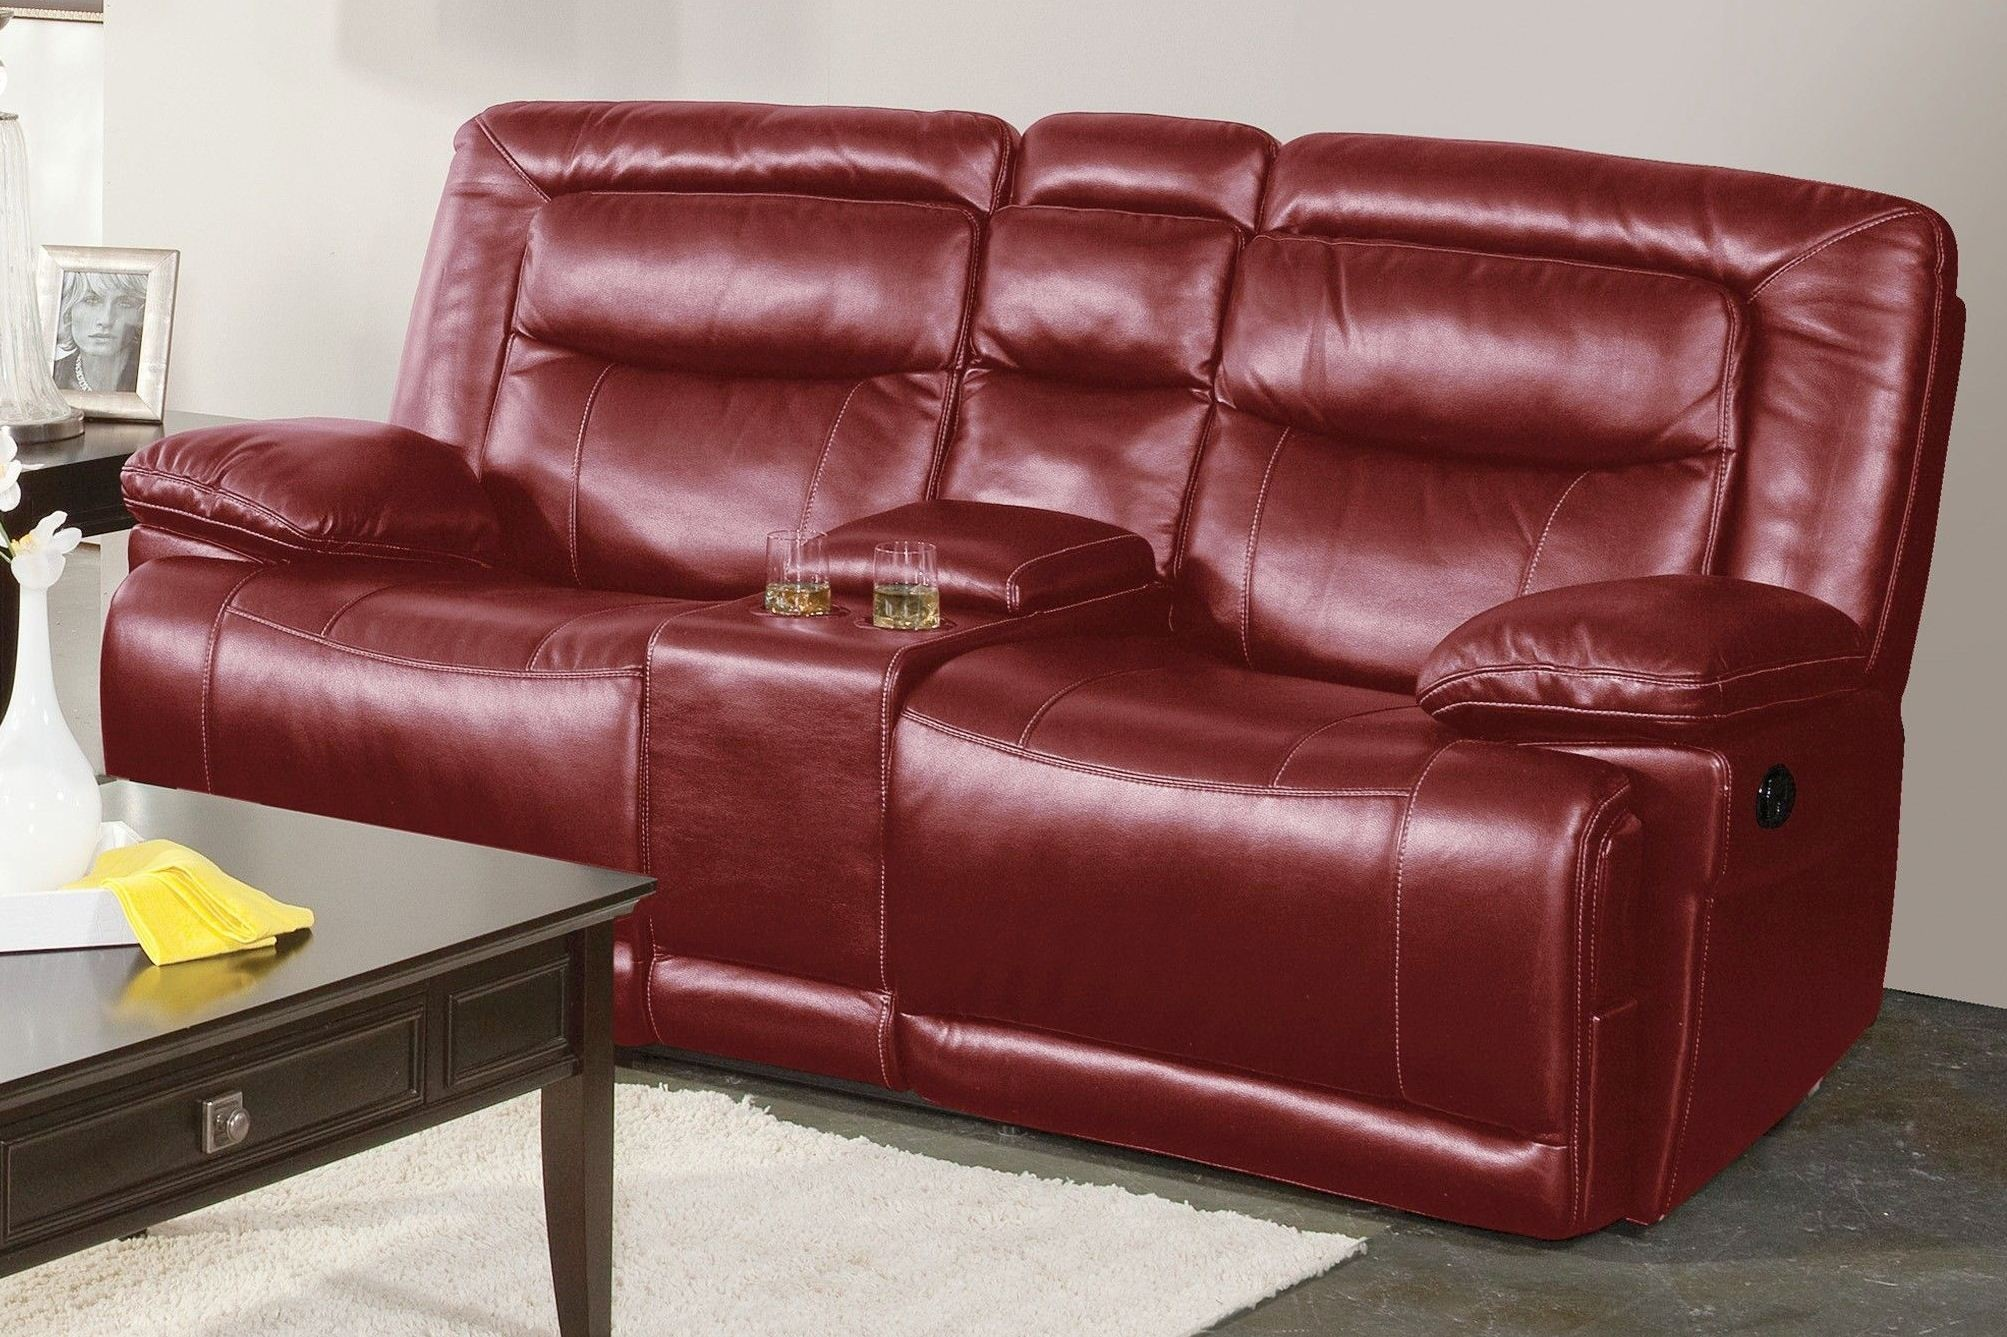 Torino Red Dual Reclining Loveseat With Console 20 246 25 Prd New Classics